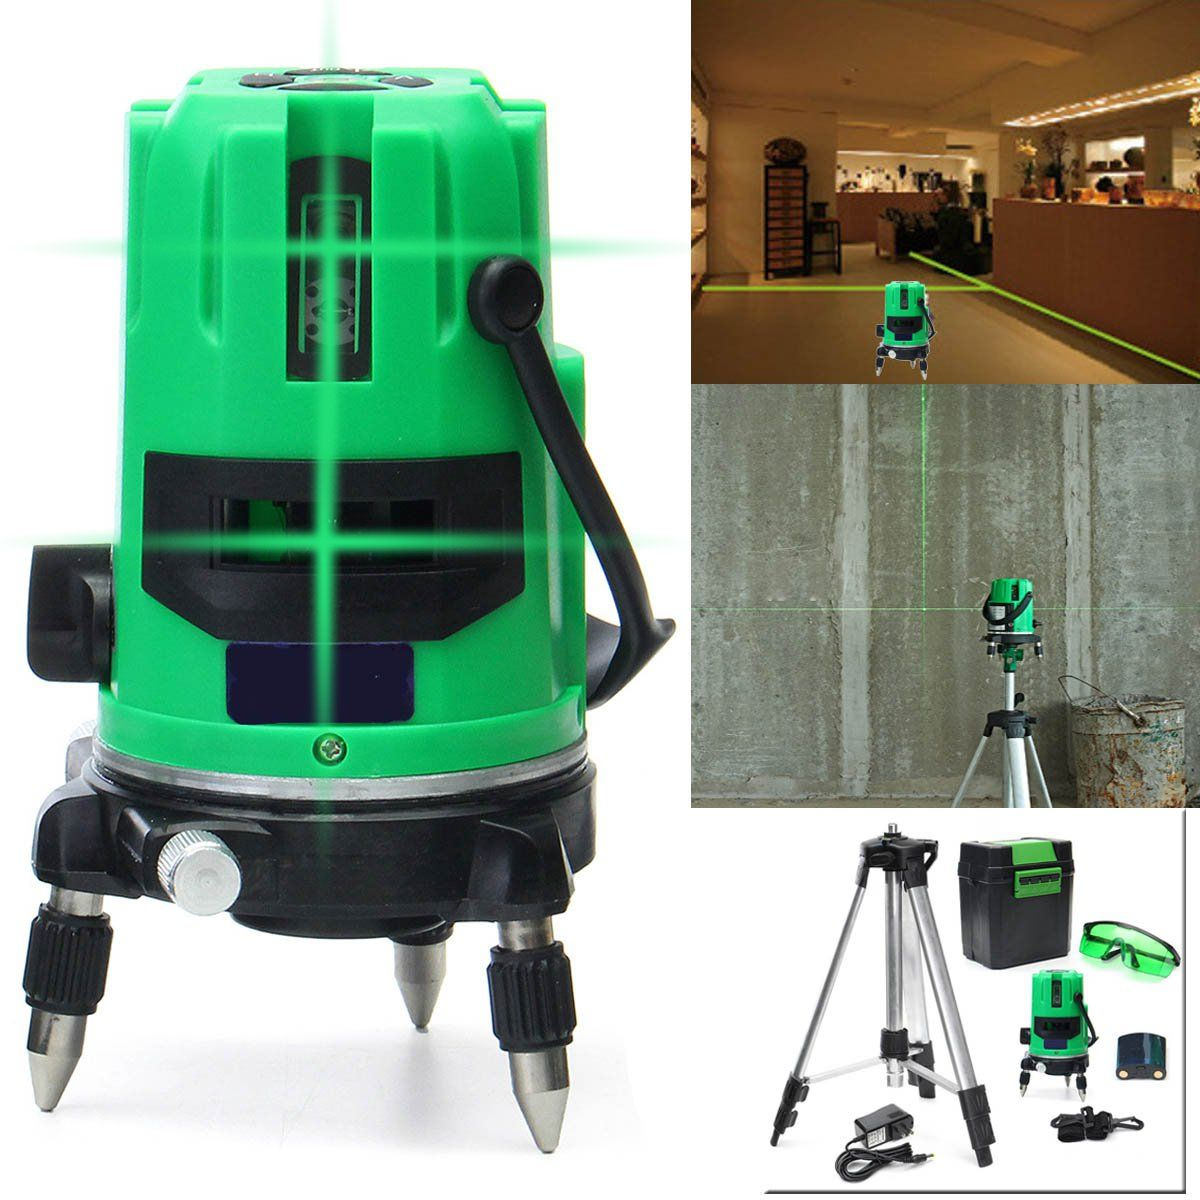 Green 3 Line 4 Points Laser Level 360 Rotary Laser Line Self Leveling With Tripod Features 3 Laser Lines 2 Vertical And Laser Levels Aluminium Alloy Rotary